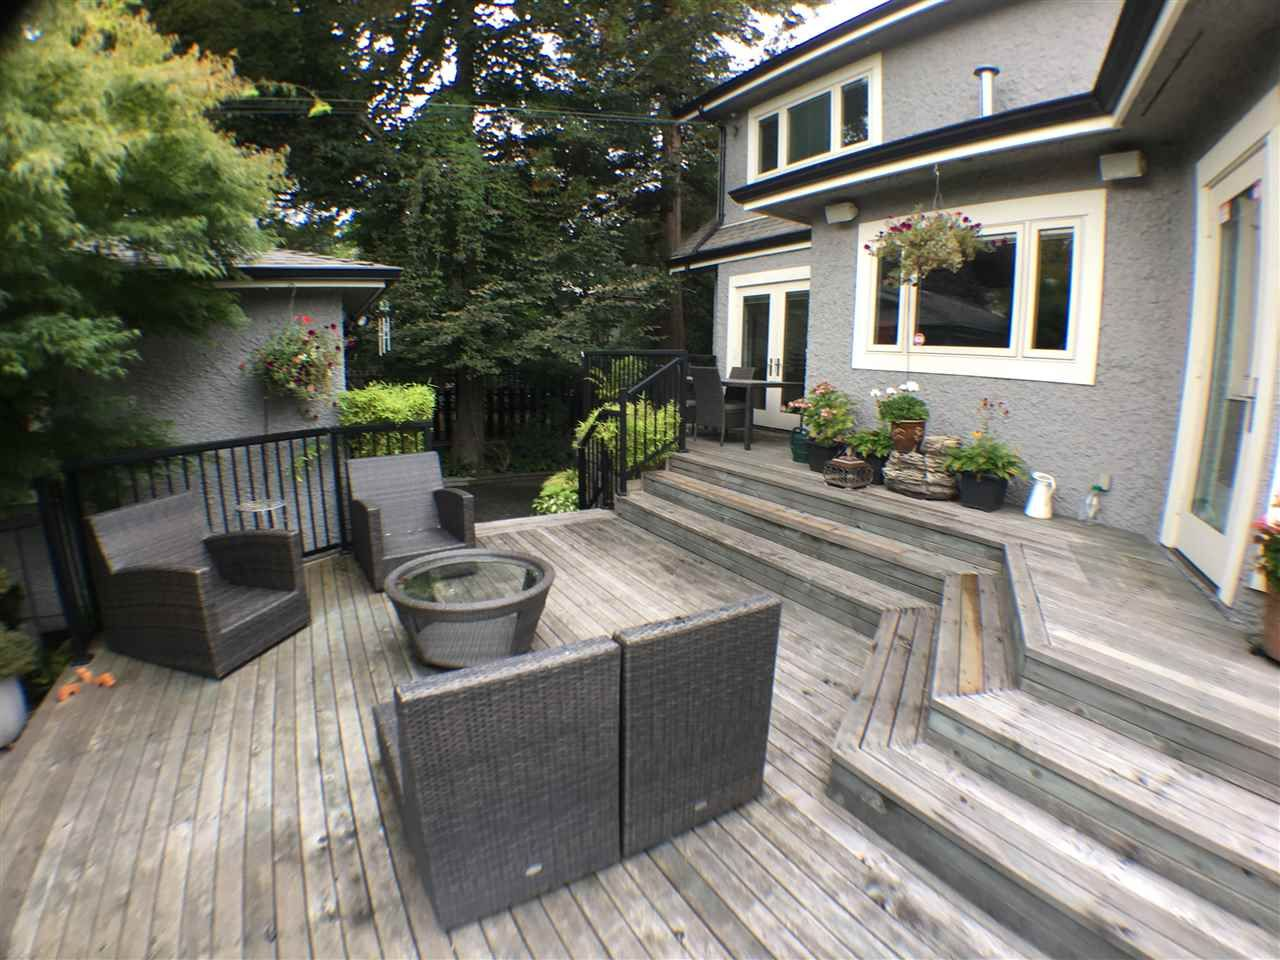 Photo 19: Photos: 1268 NANTON Avenue in Vancouver: Shaughnessy House for sale (Vancouver West)  : MLS®# R2209391